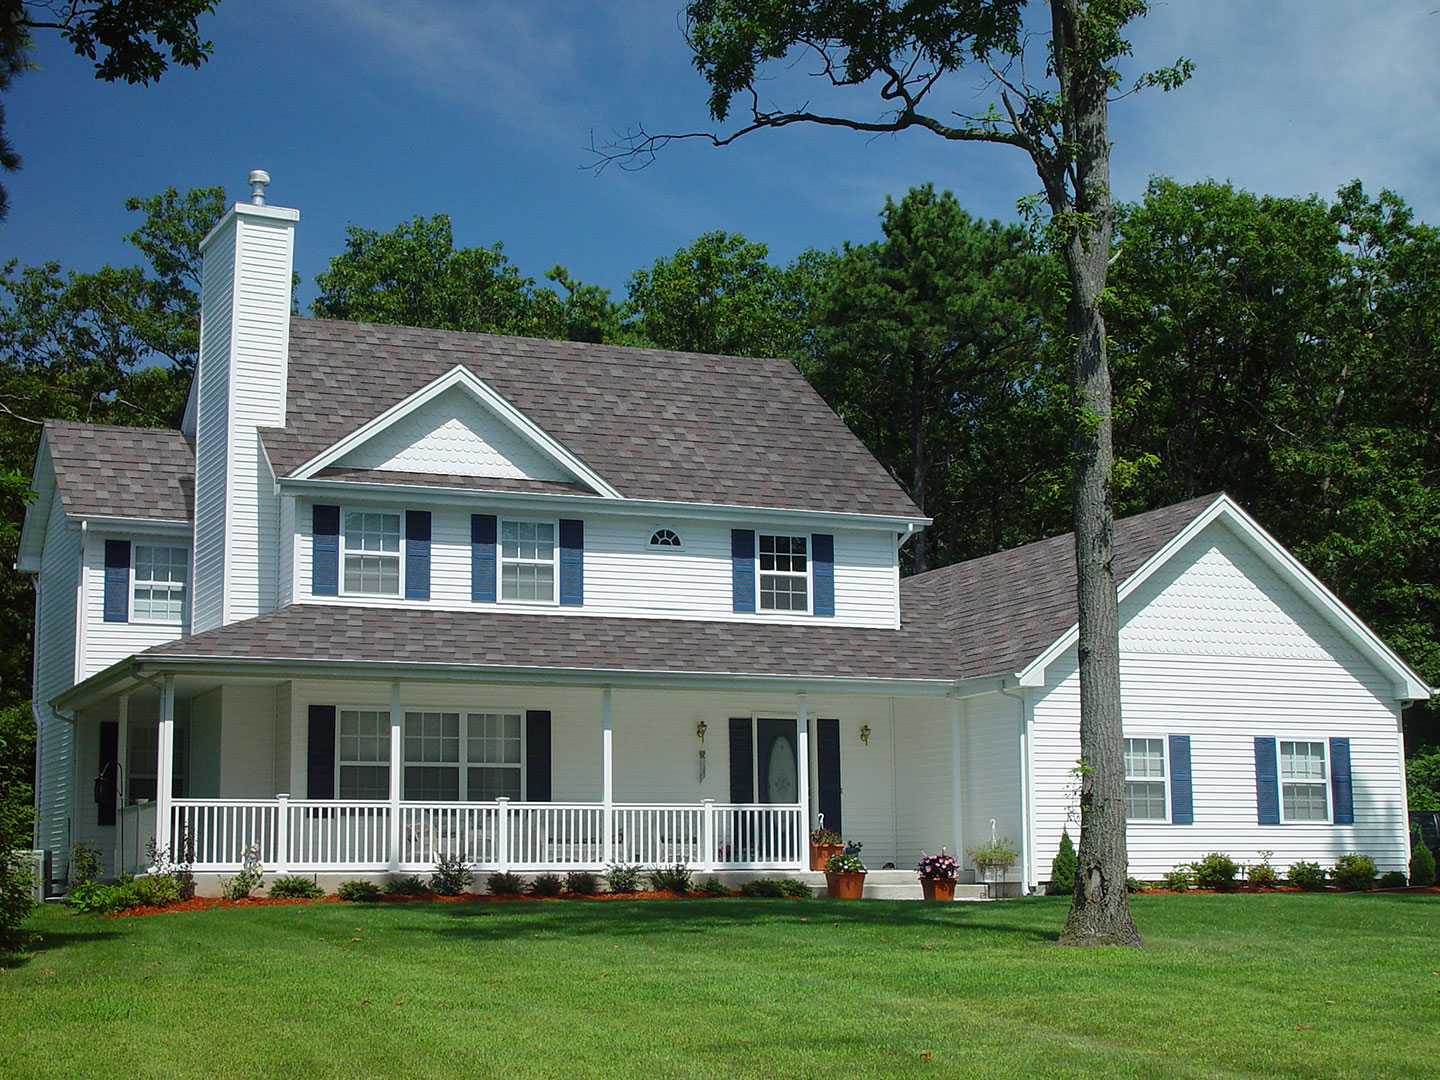 You can also always choose to go with clay, slate, or wooden shingles to add a unique, differentiated look to your home. Pinnacle Pristine Atlas Roofing